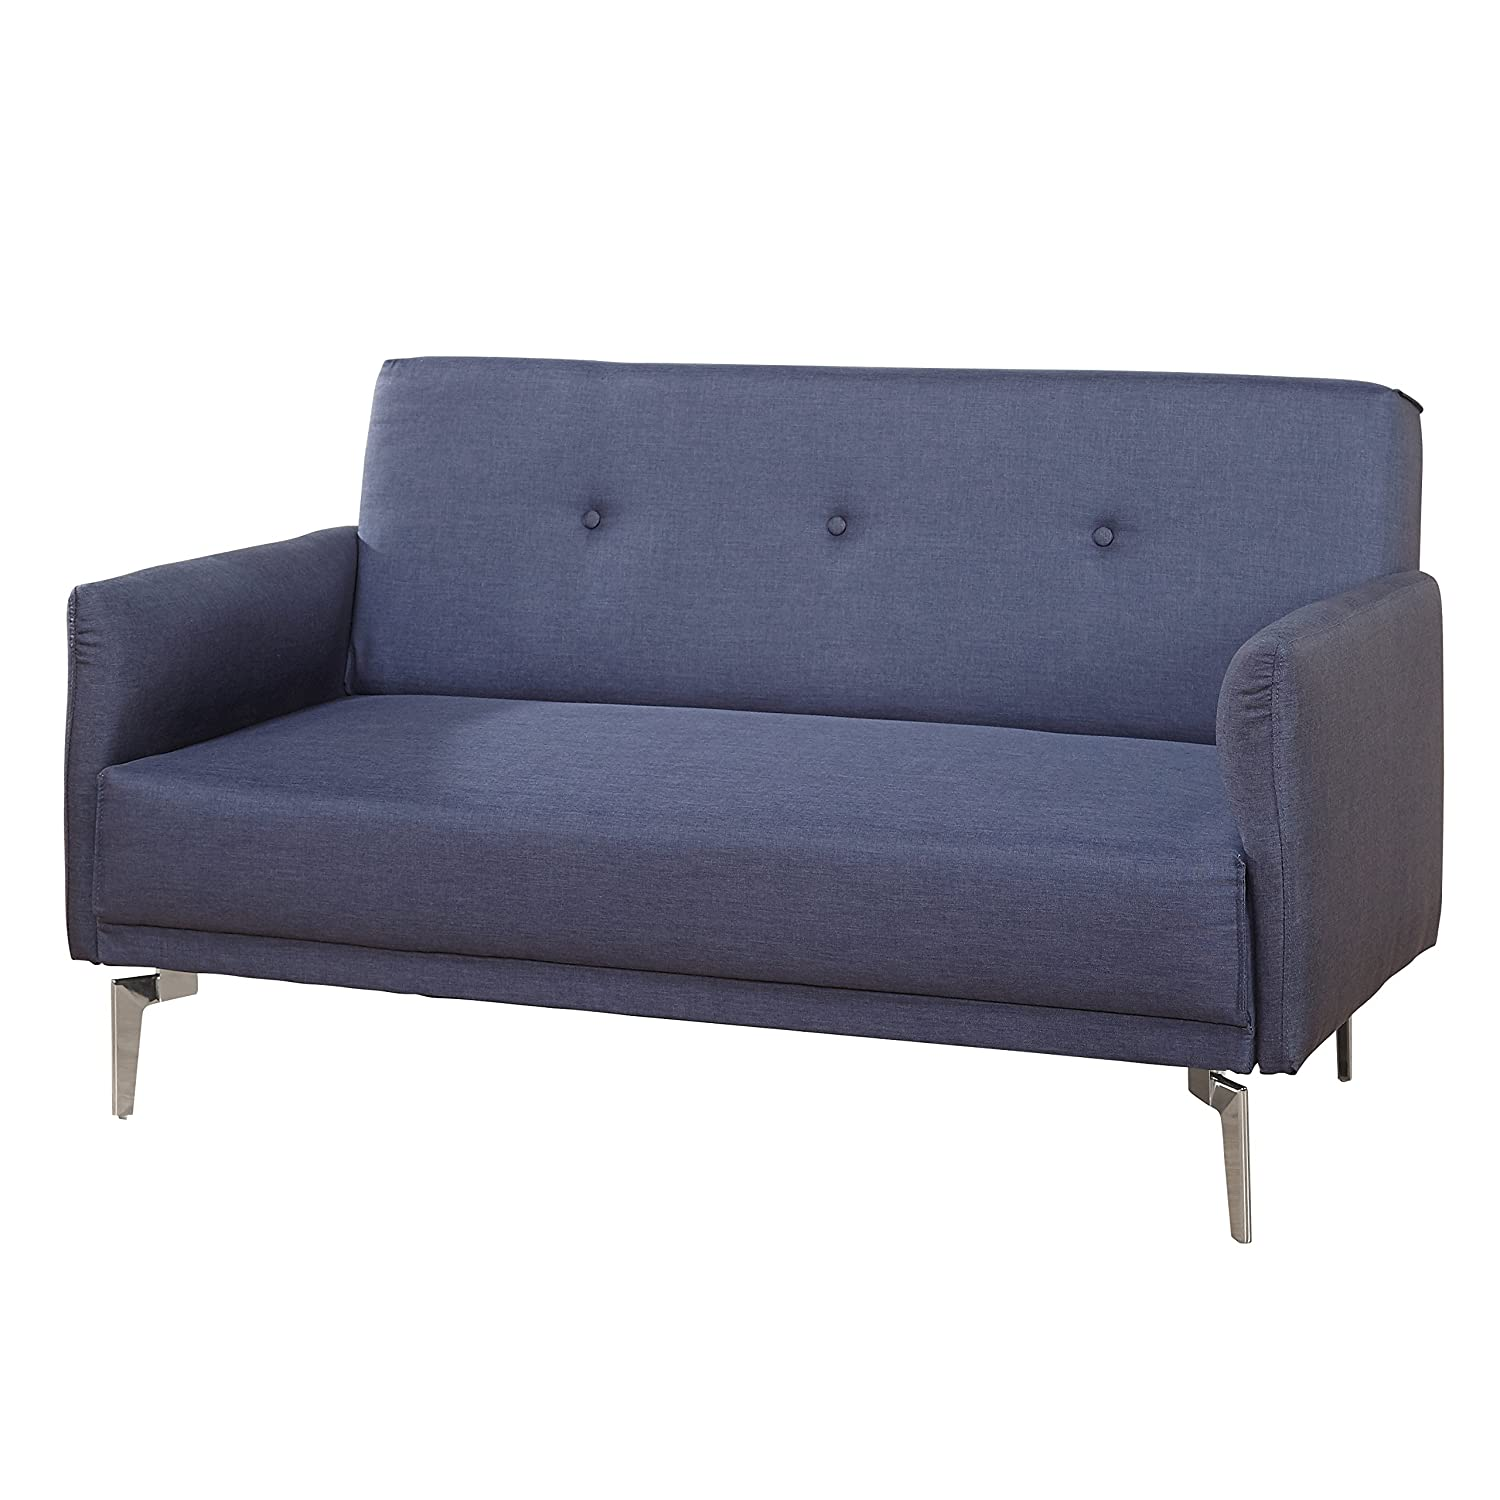 Classic Mid Century Design Franco Loveseat. Fully Upholstered Seat and Body In A Brushed Navy Fabric While Button-